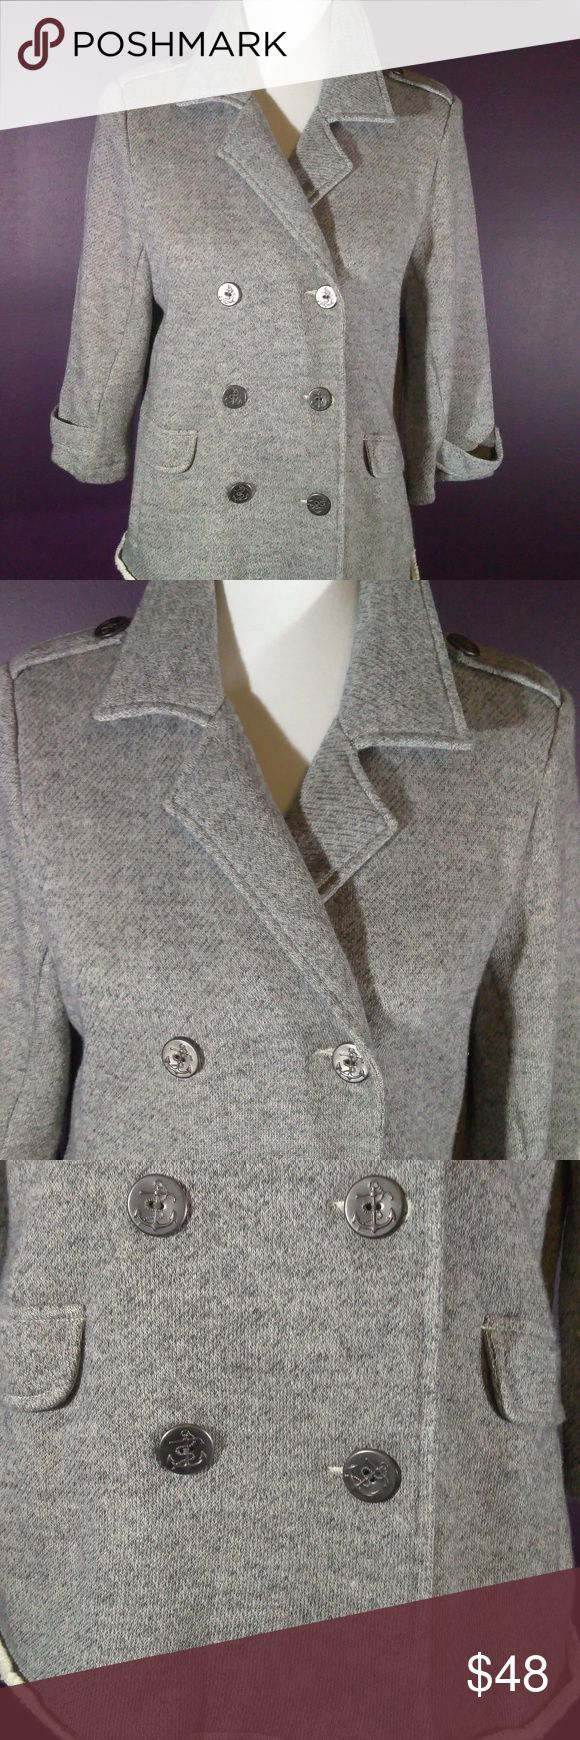 Darling Vintage cabi Spring 2013 Shrunken Peacoat A must have vintage lightweight cabi Shrunken Peacoat #393 ♥ EUC, worn once! This jacket is so versatile - pair with jeans, shorts, skirts or dresses. Super soft cotton jacket has unfinished hem, 3/4 sleeve, double breast style with anchor graphic buttons! Hard to find size, grab it up!   Fabric: 79% Cotton - 21% Poly  Garment Care: Machine Wash - Flat to Dry  ♥ Please visit my closet again soon - lots of excellent deals on minty condition…